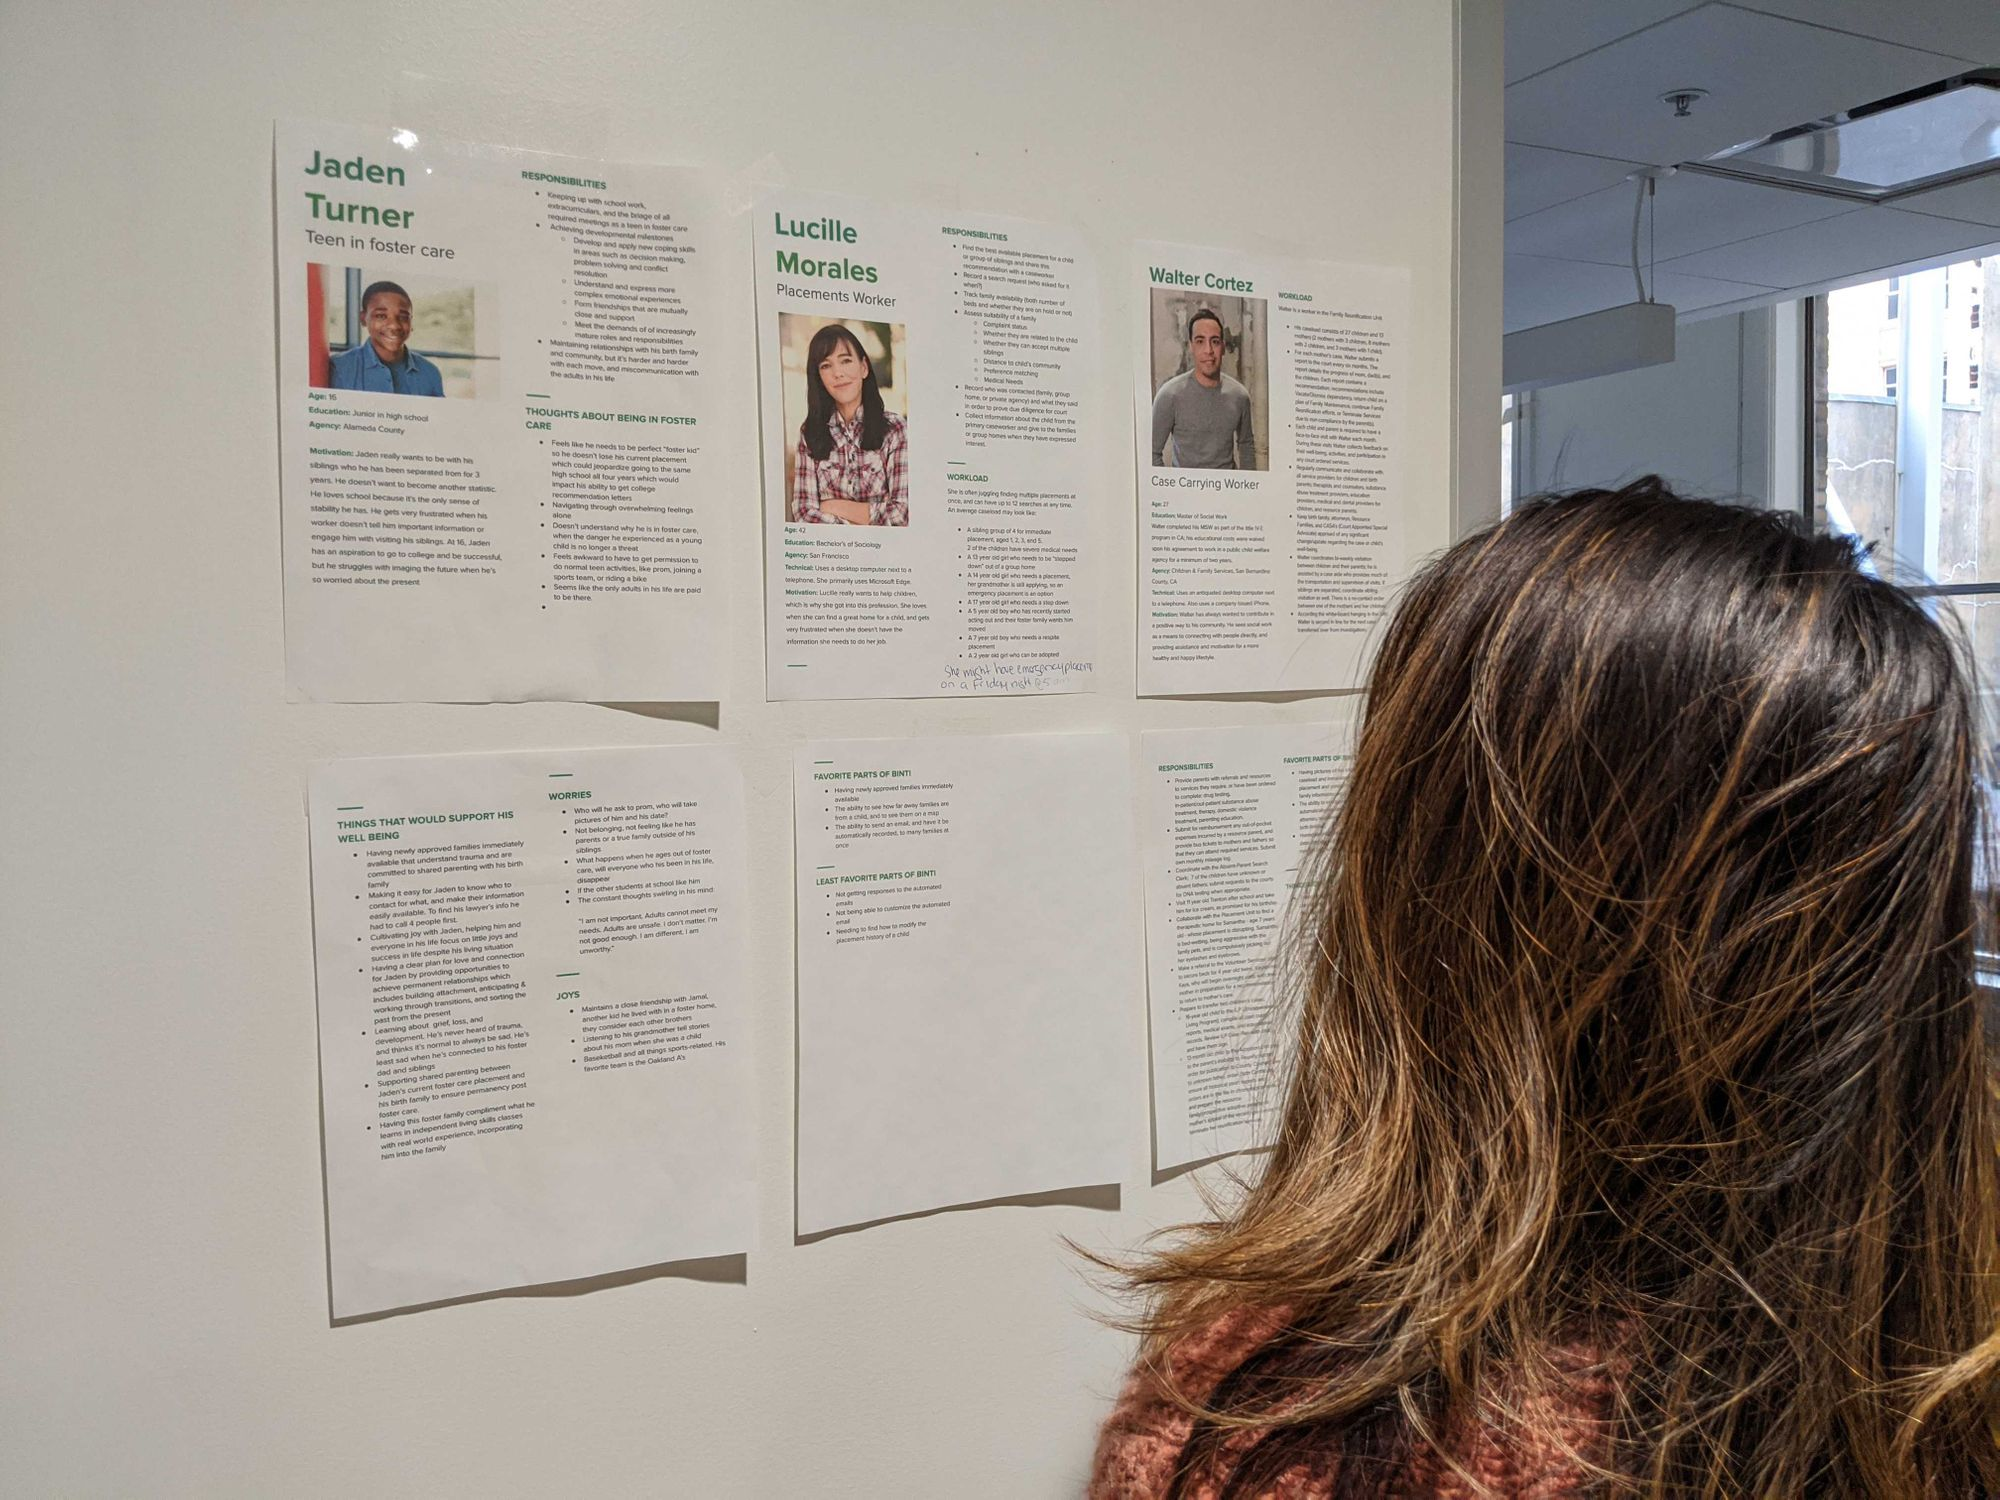 Reading the product personas posted in the Binti Oakland office kitchen